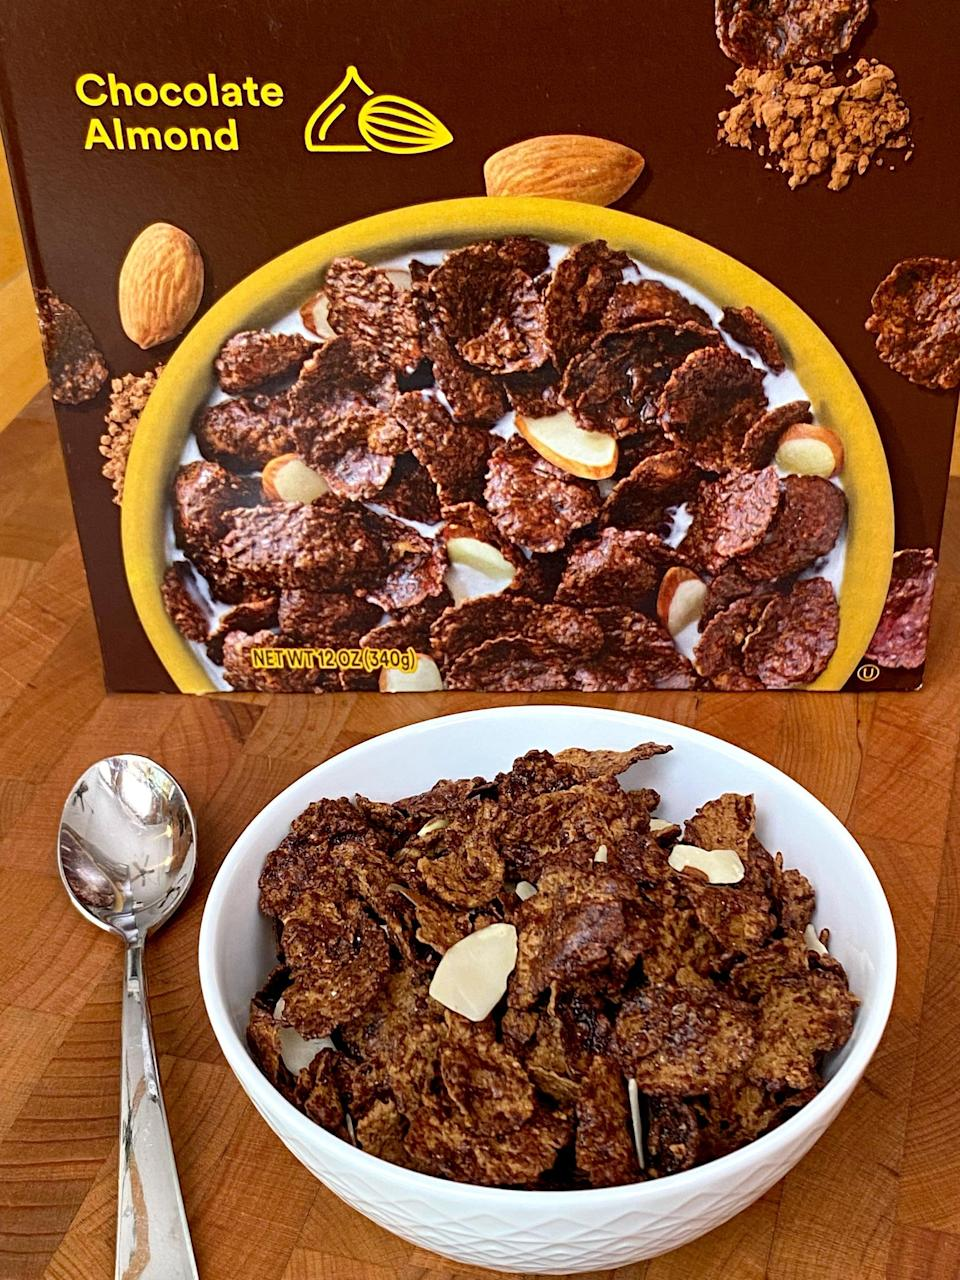 <p>Full of robust chocolatey flavor, this Chocolate Almond RX Cereal is perfectly sweet, and has a satisfying crispy-crunch. There are tons of sliced almonds mixed throughout the thick, textured flakes, and I was pleasantly surprised how much the cereal looked like the photo on the box. Even after soaking in soy milk for several minutes, the flakes didn't lose their delightfully firm crunch.</p>